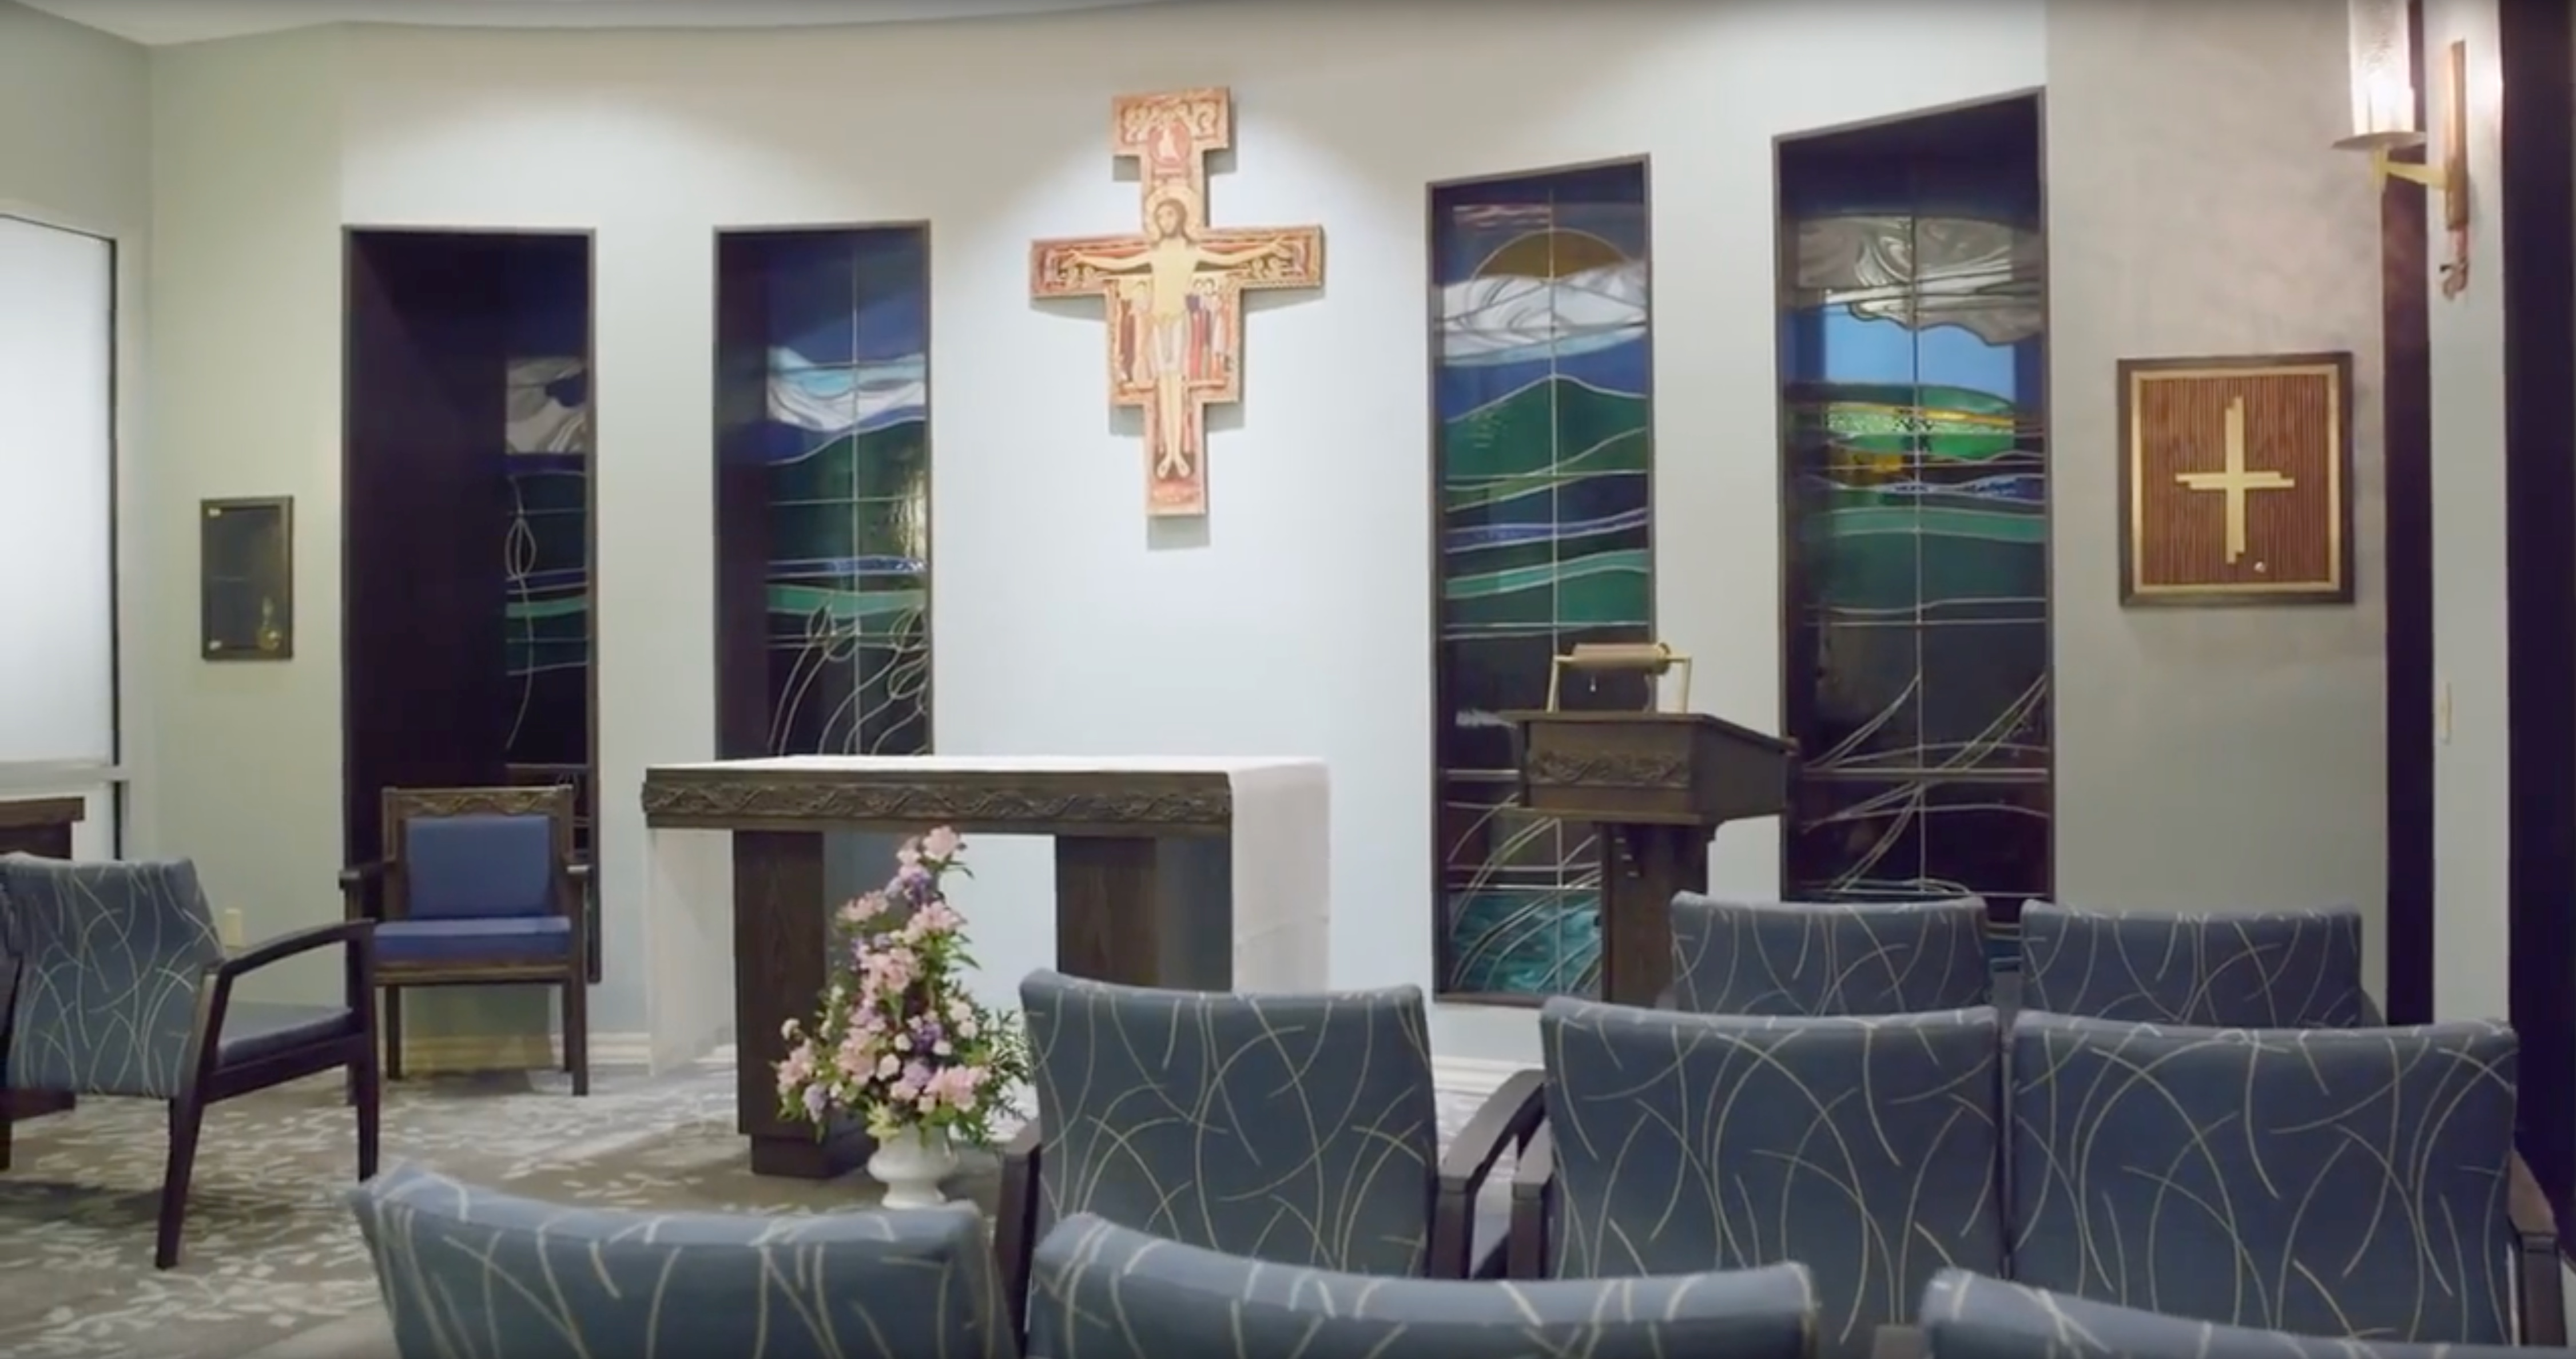 The chapel at St. Joseph's Hospital-North